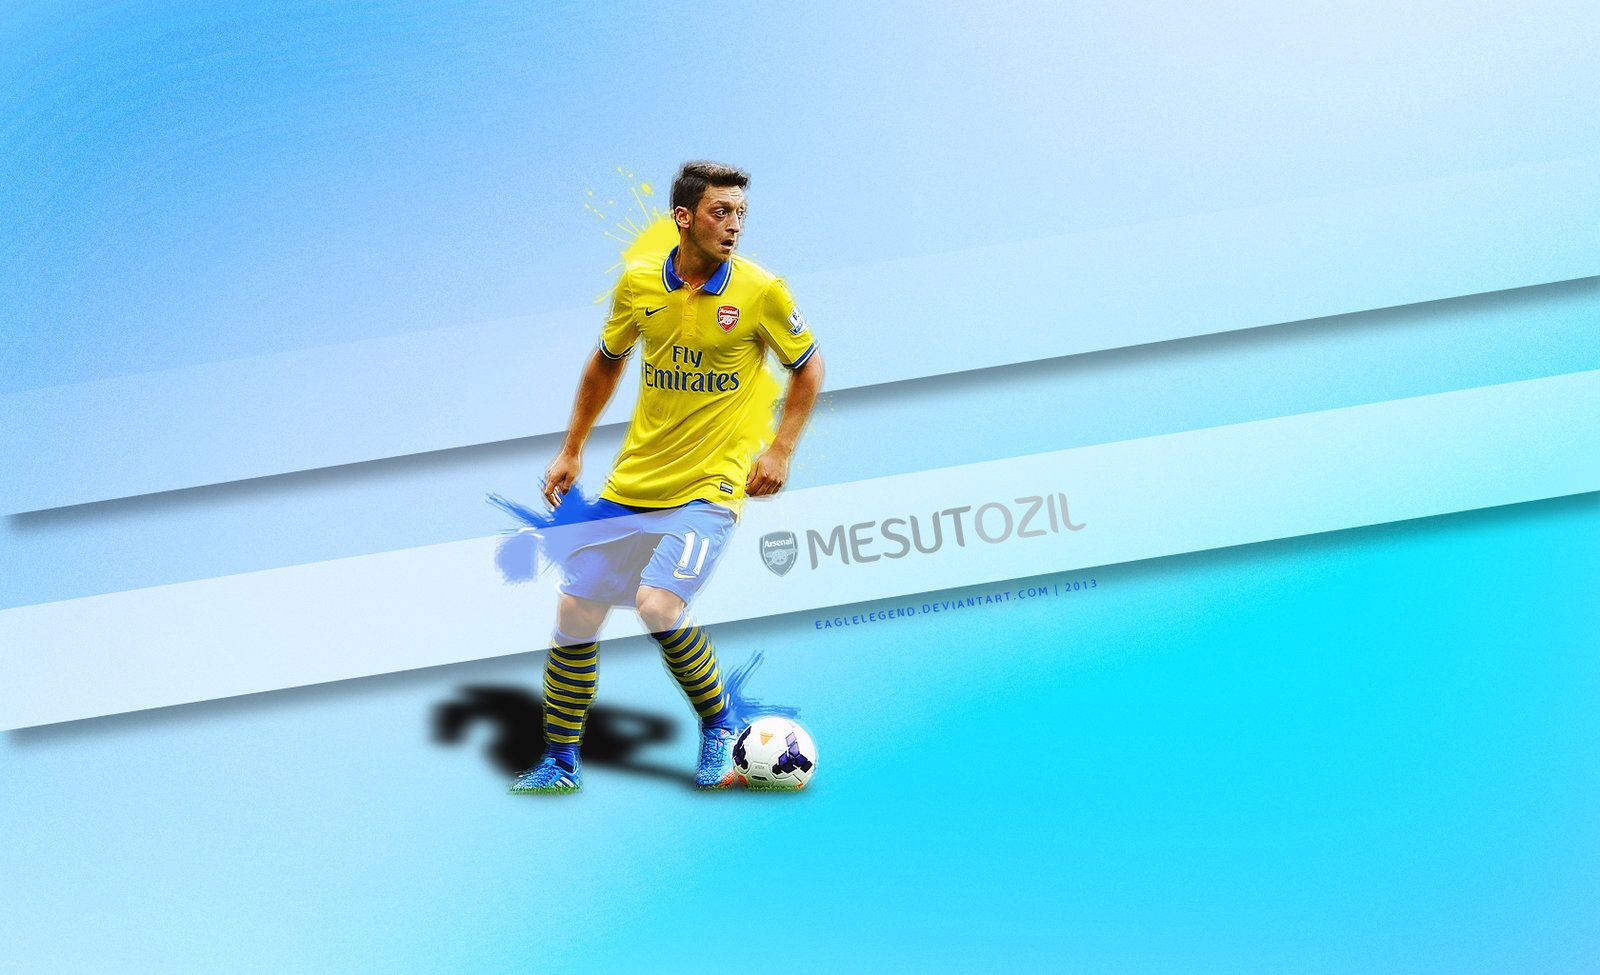 Mesut Ozil Wallpaper By Eaglelegend.deviantart.com On